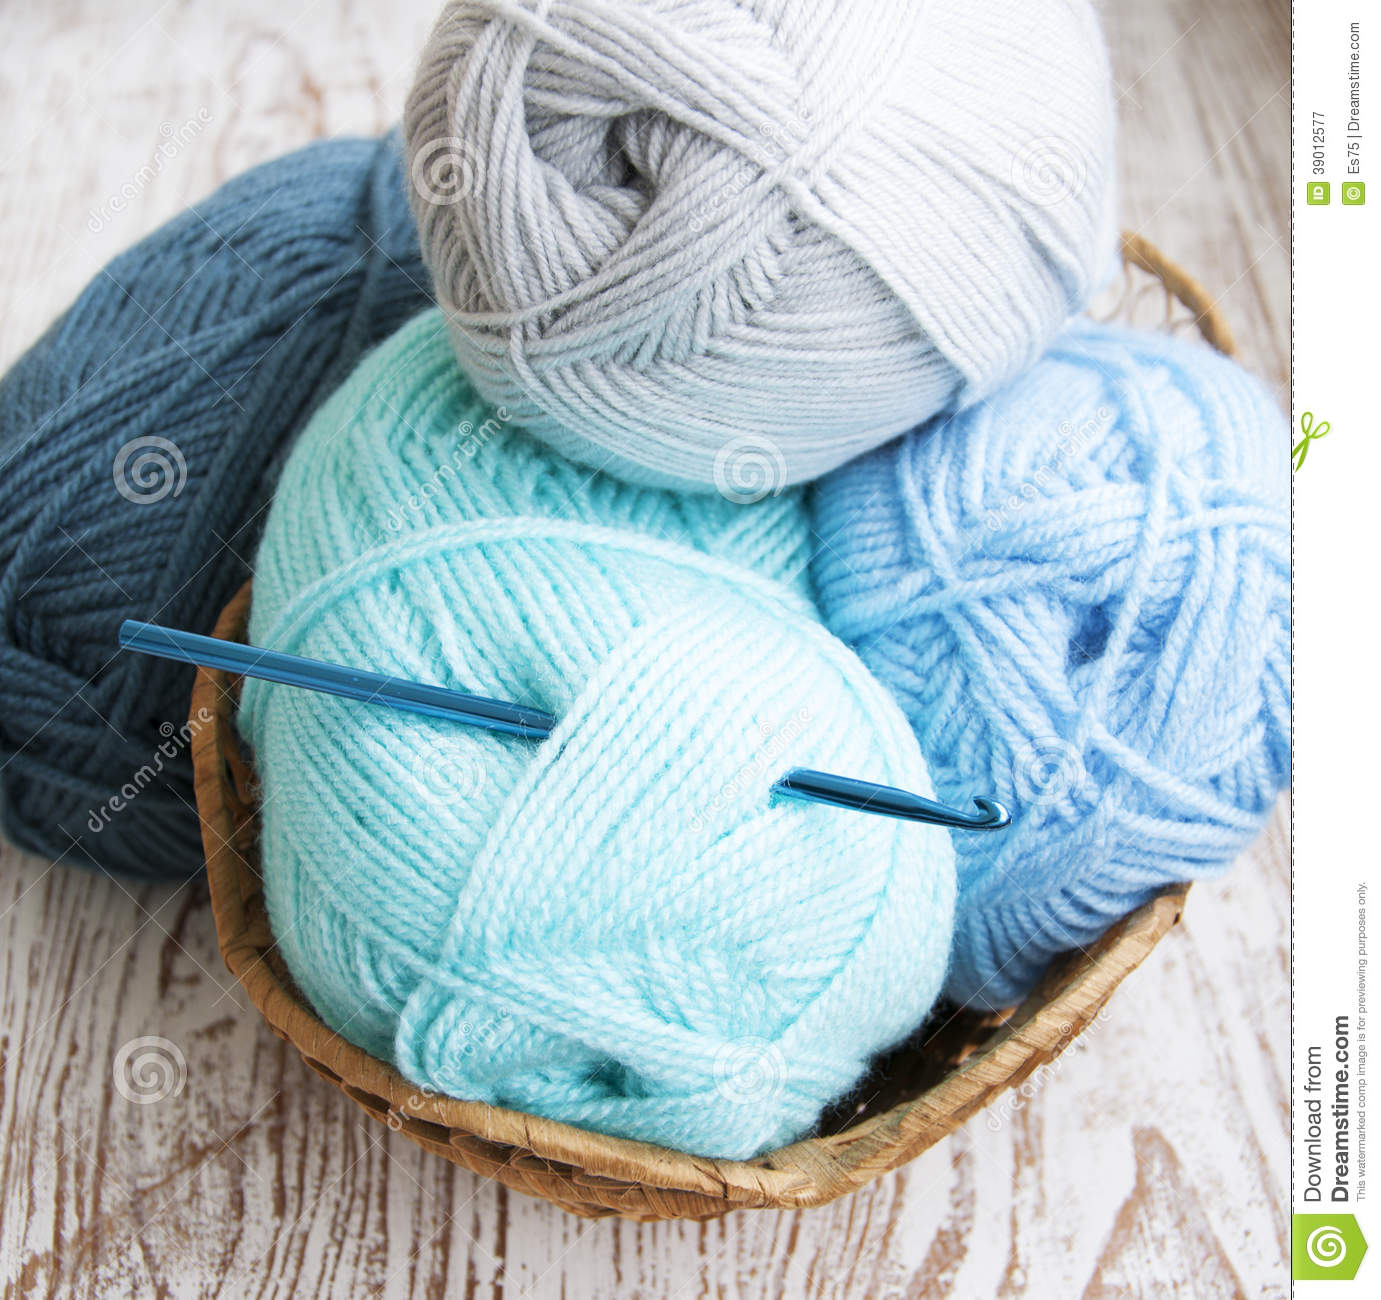 Crochet Knitting Yarn : More similar stock images of ` Crochet hook and knitting yarn `